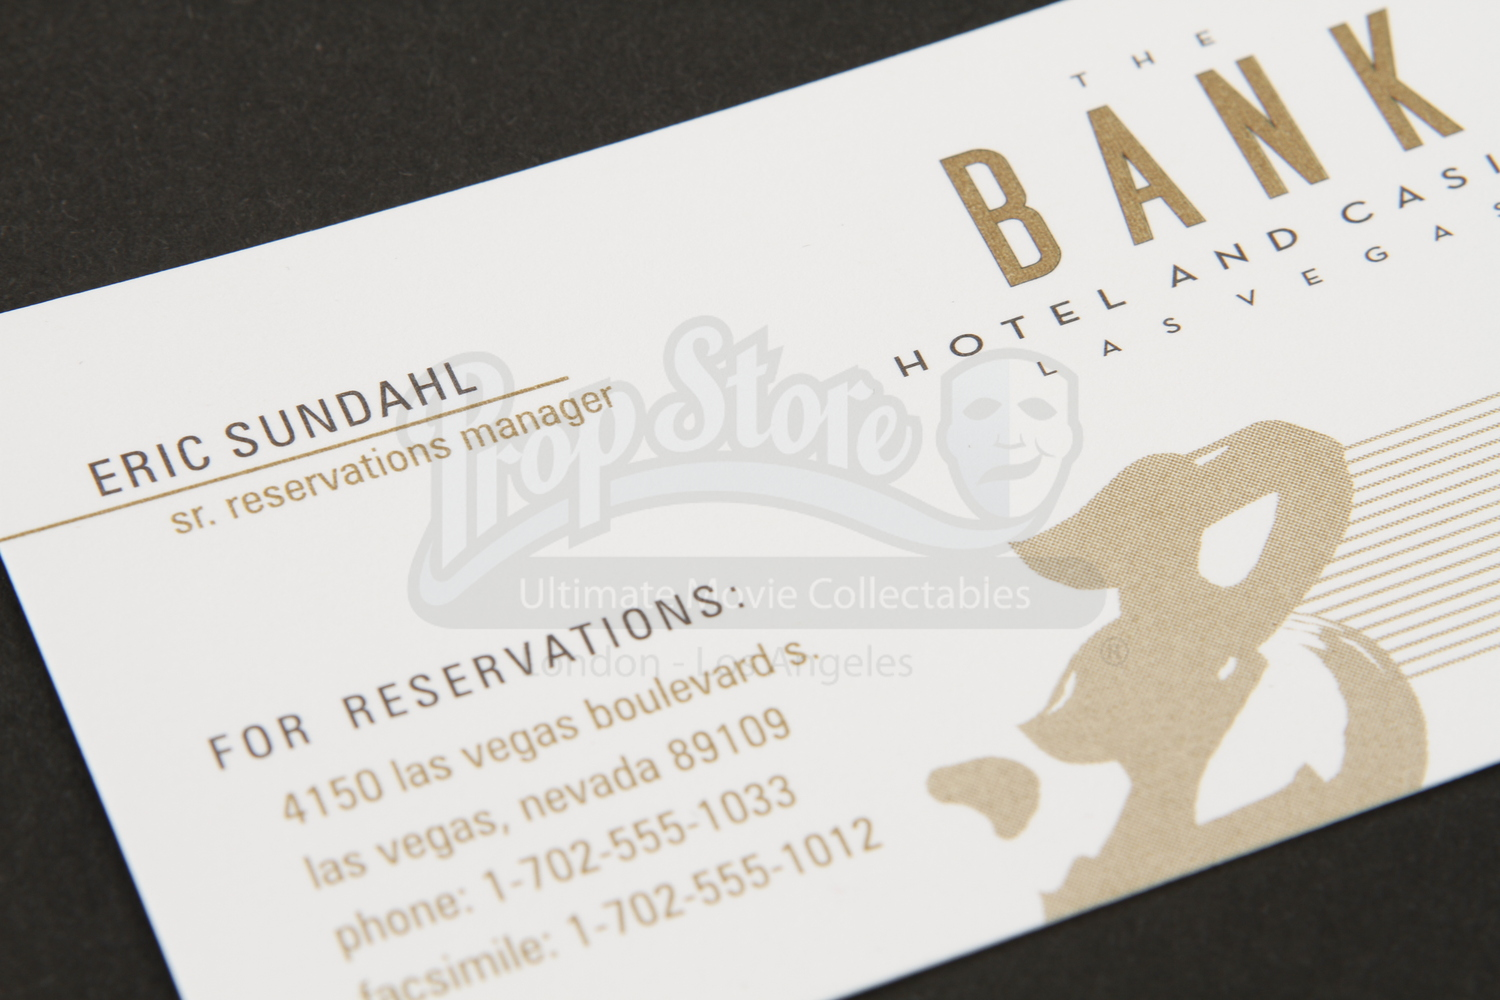 Bank Hotel And Casino Sr. Reservations Manager Business Card ...